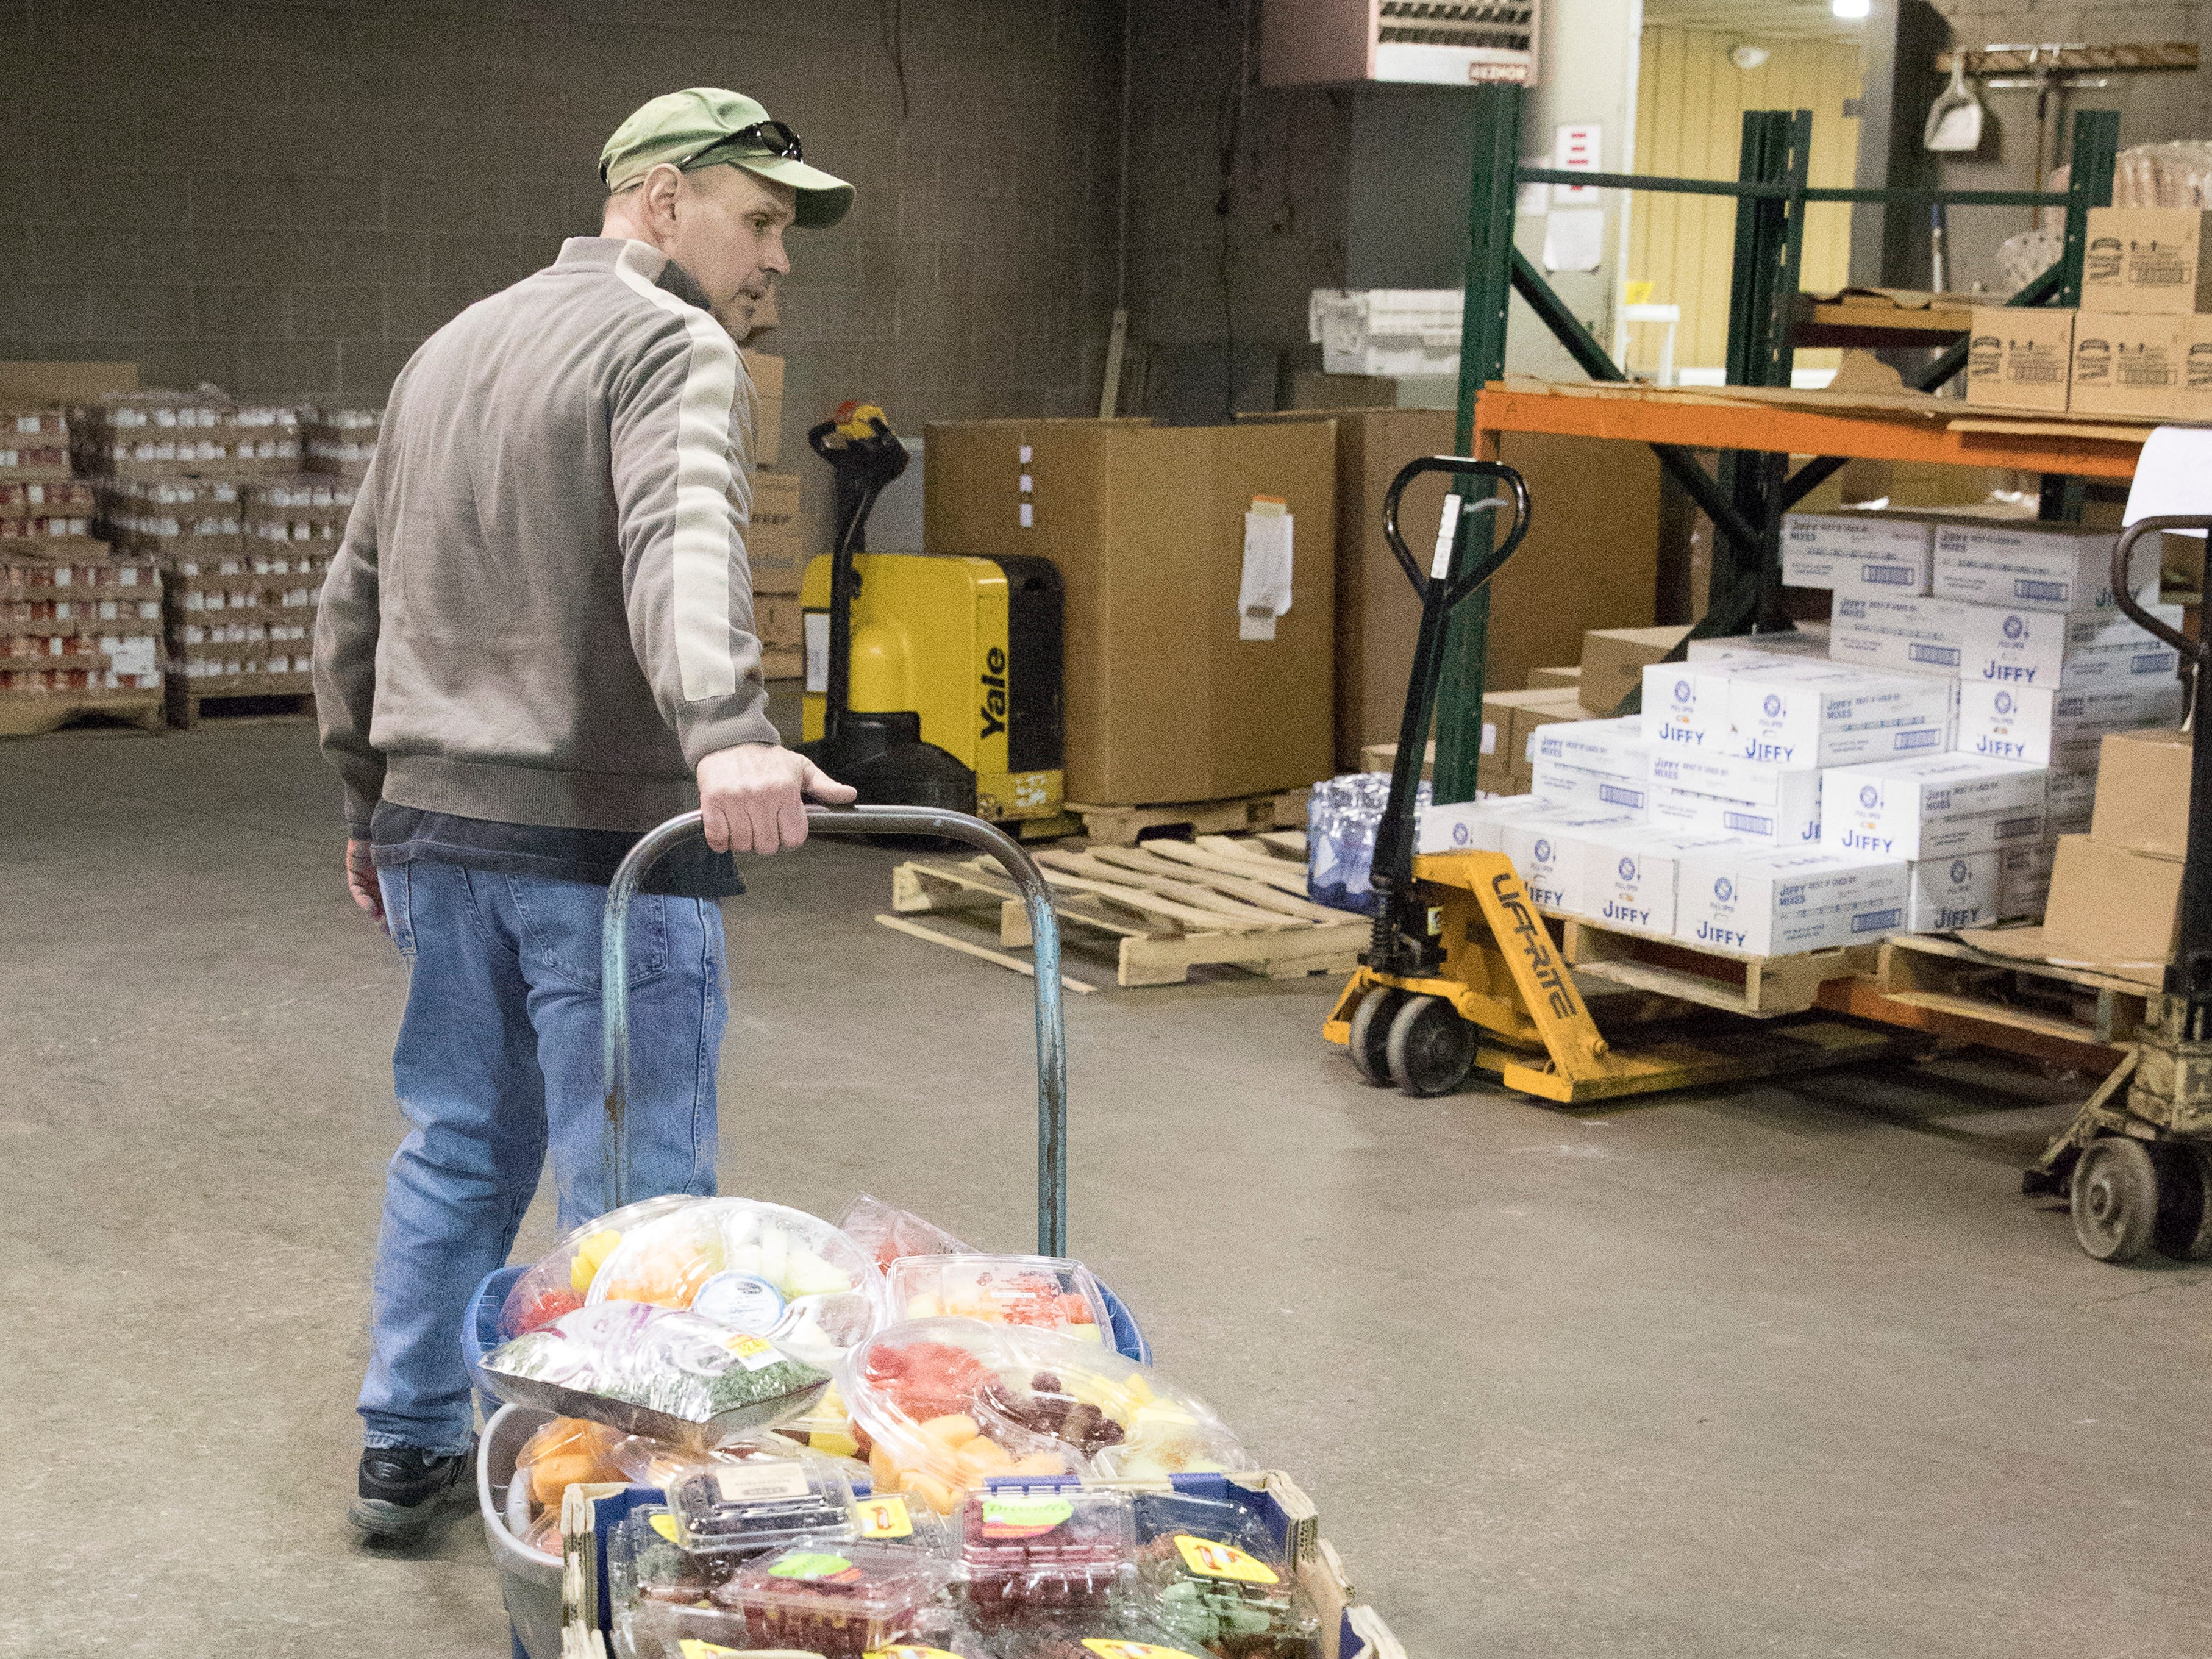 Alvis House volunteer Steve Durham wheels a load of fruit through the Good Samaritan Food Pantry warehouse to be placed on the shelves of the pantry store Monday morning in Chillicothe, Ohio.